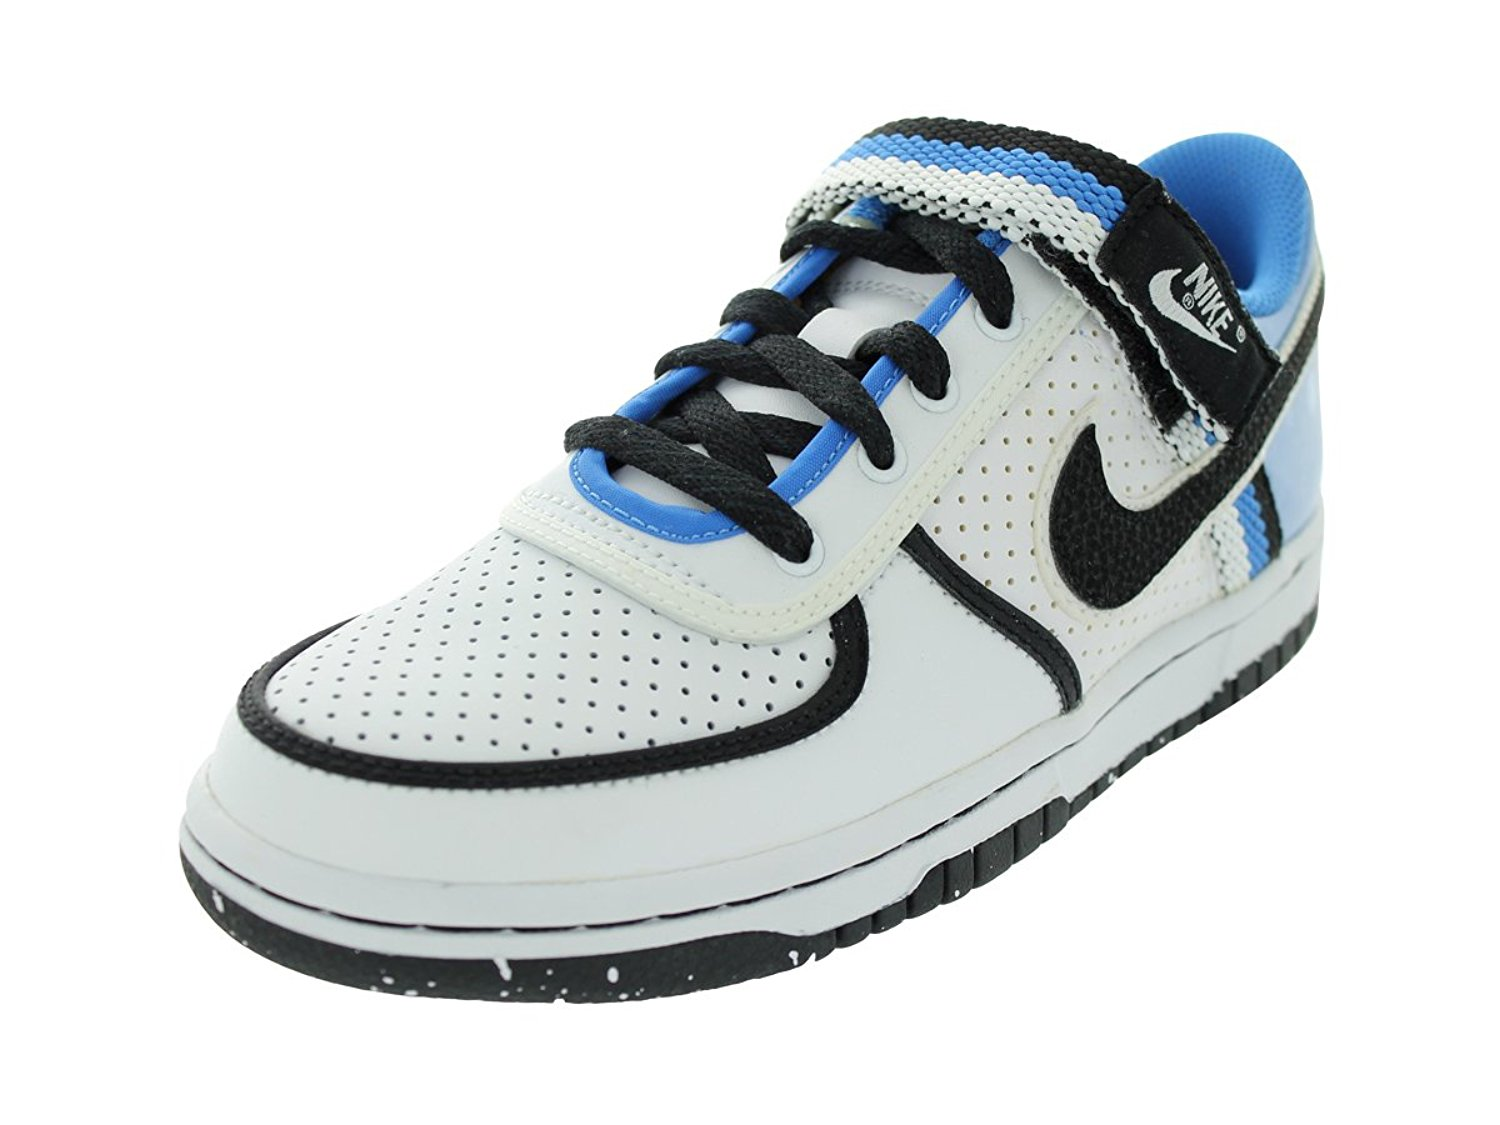 huge selection of 7a12f 81156 Get Quotations · Nike Kids NIKE VANDAL LOW (GS) BASKETBALL SHOES 6  (WHITE/BLACK-